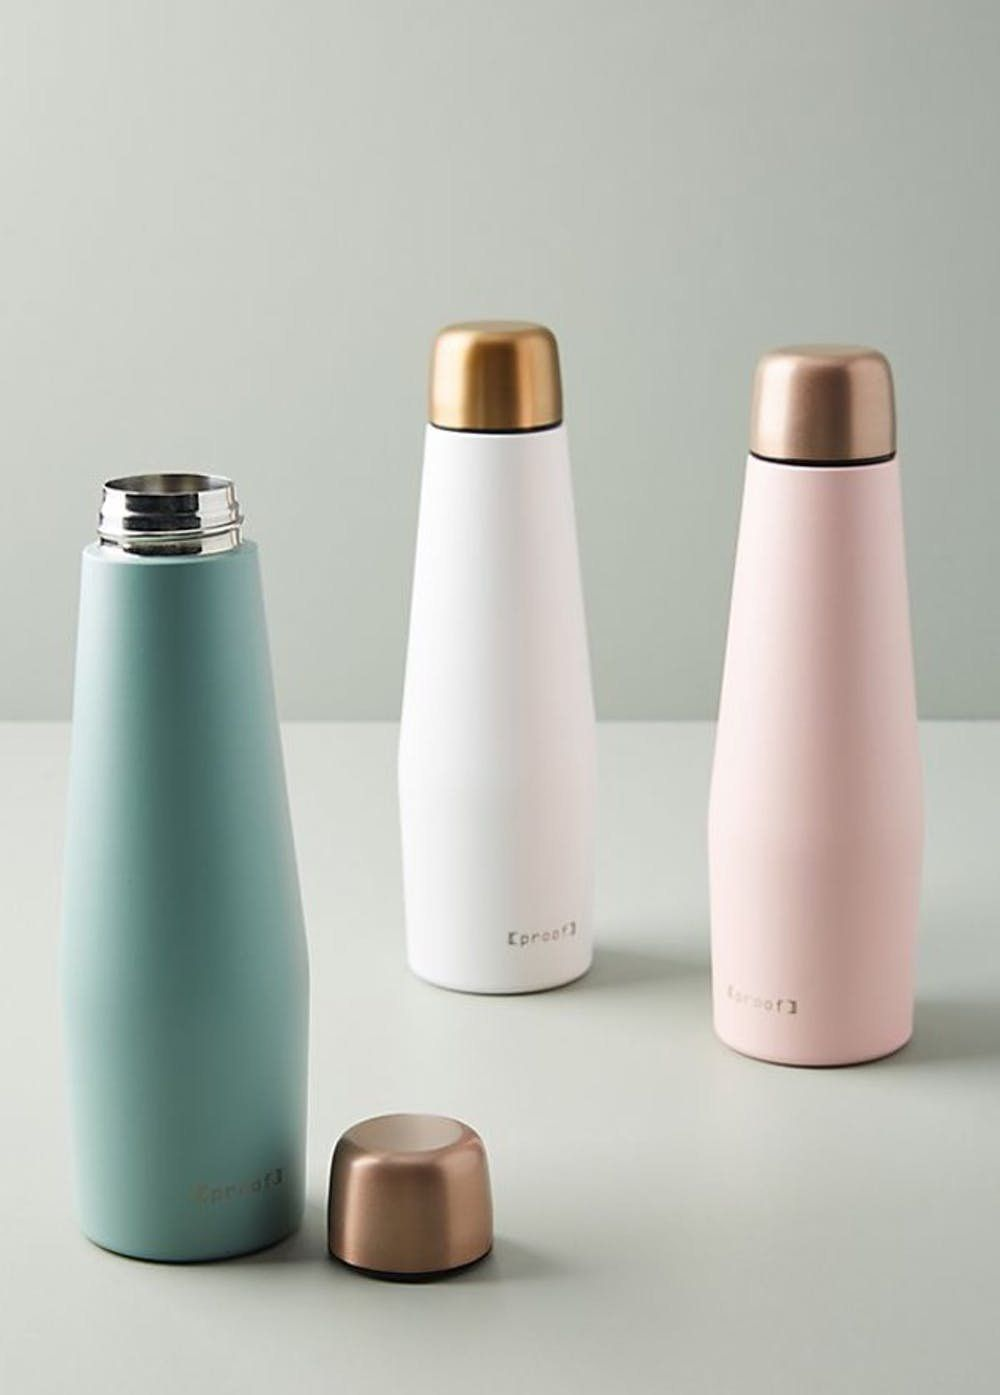 Stylish water bottles that are hydration and fashion goals.